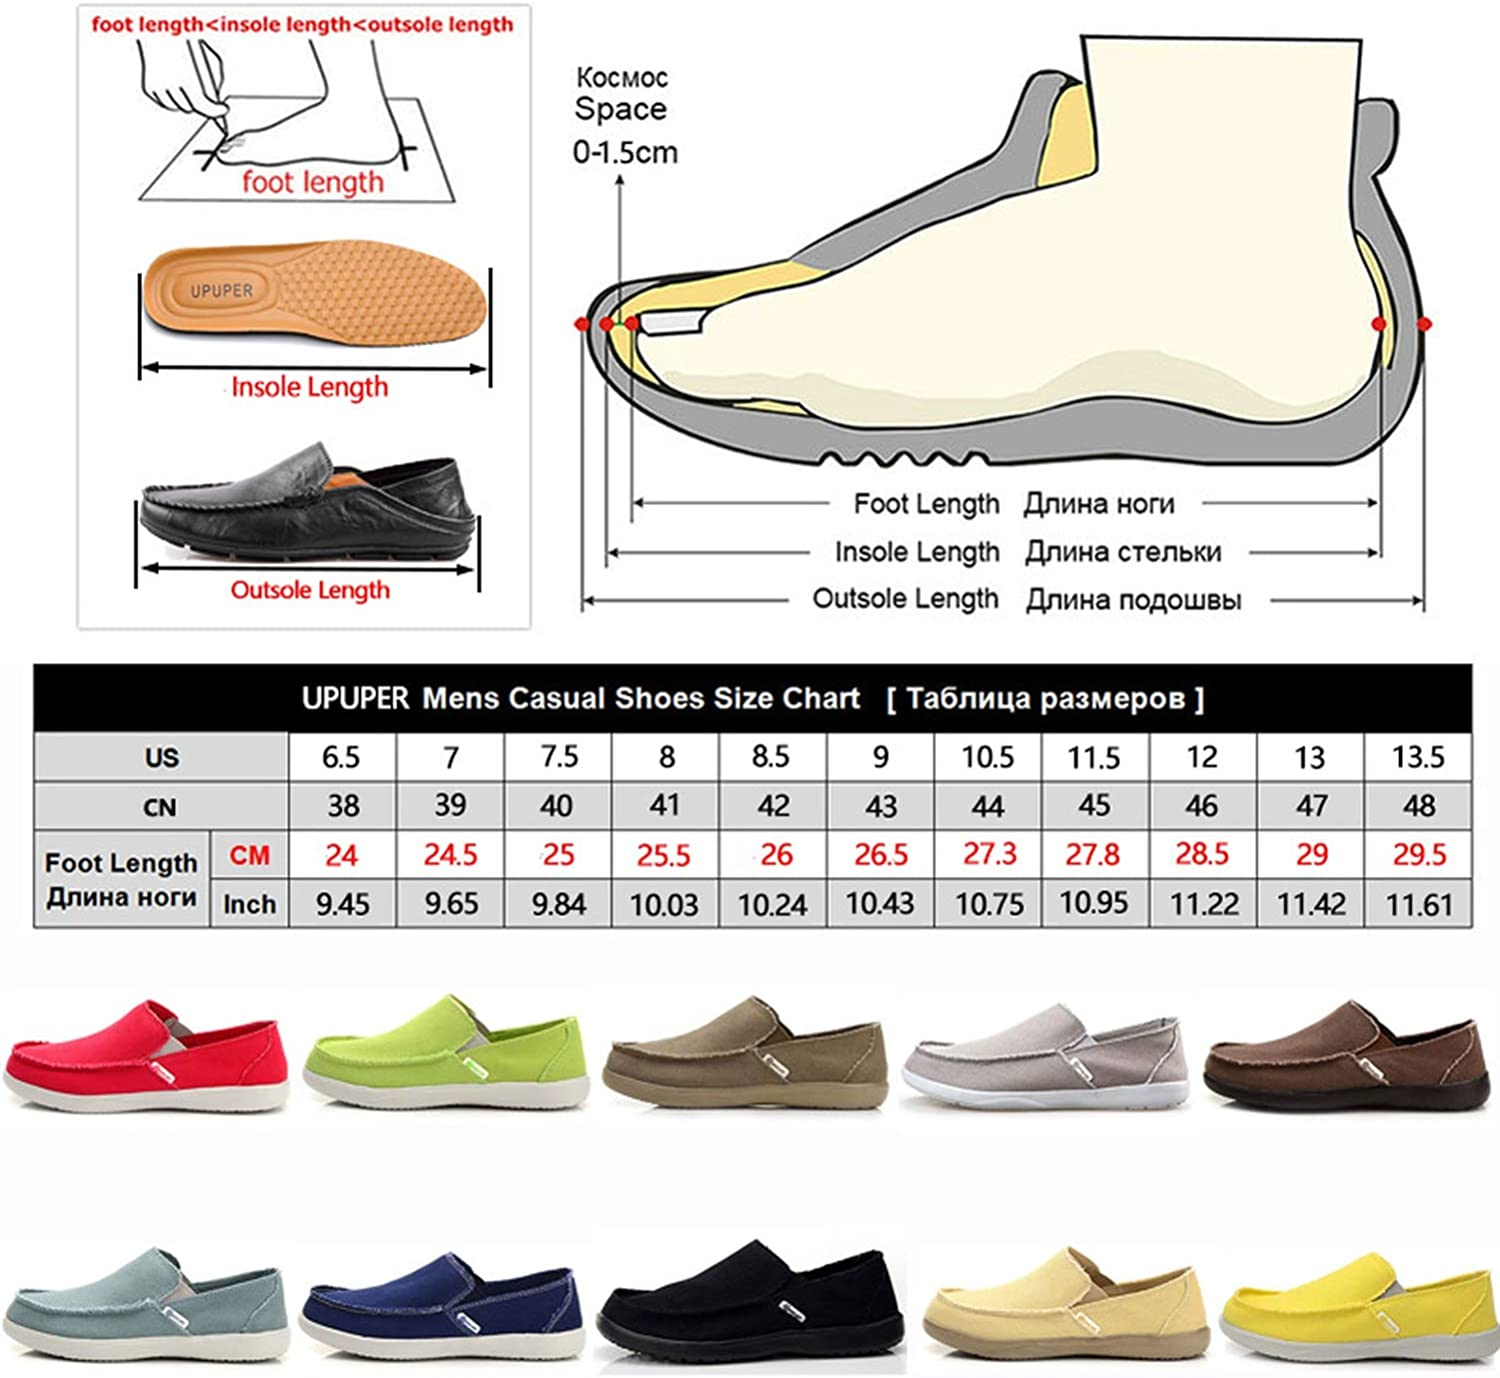 Canvas Shoes Mens Sneakers Breathable Ultra-Light Loafers Slip-On Mens Casual Shoes Spring Walking Flat Shoes,1049 Khaki,7.5 Colorful Dream